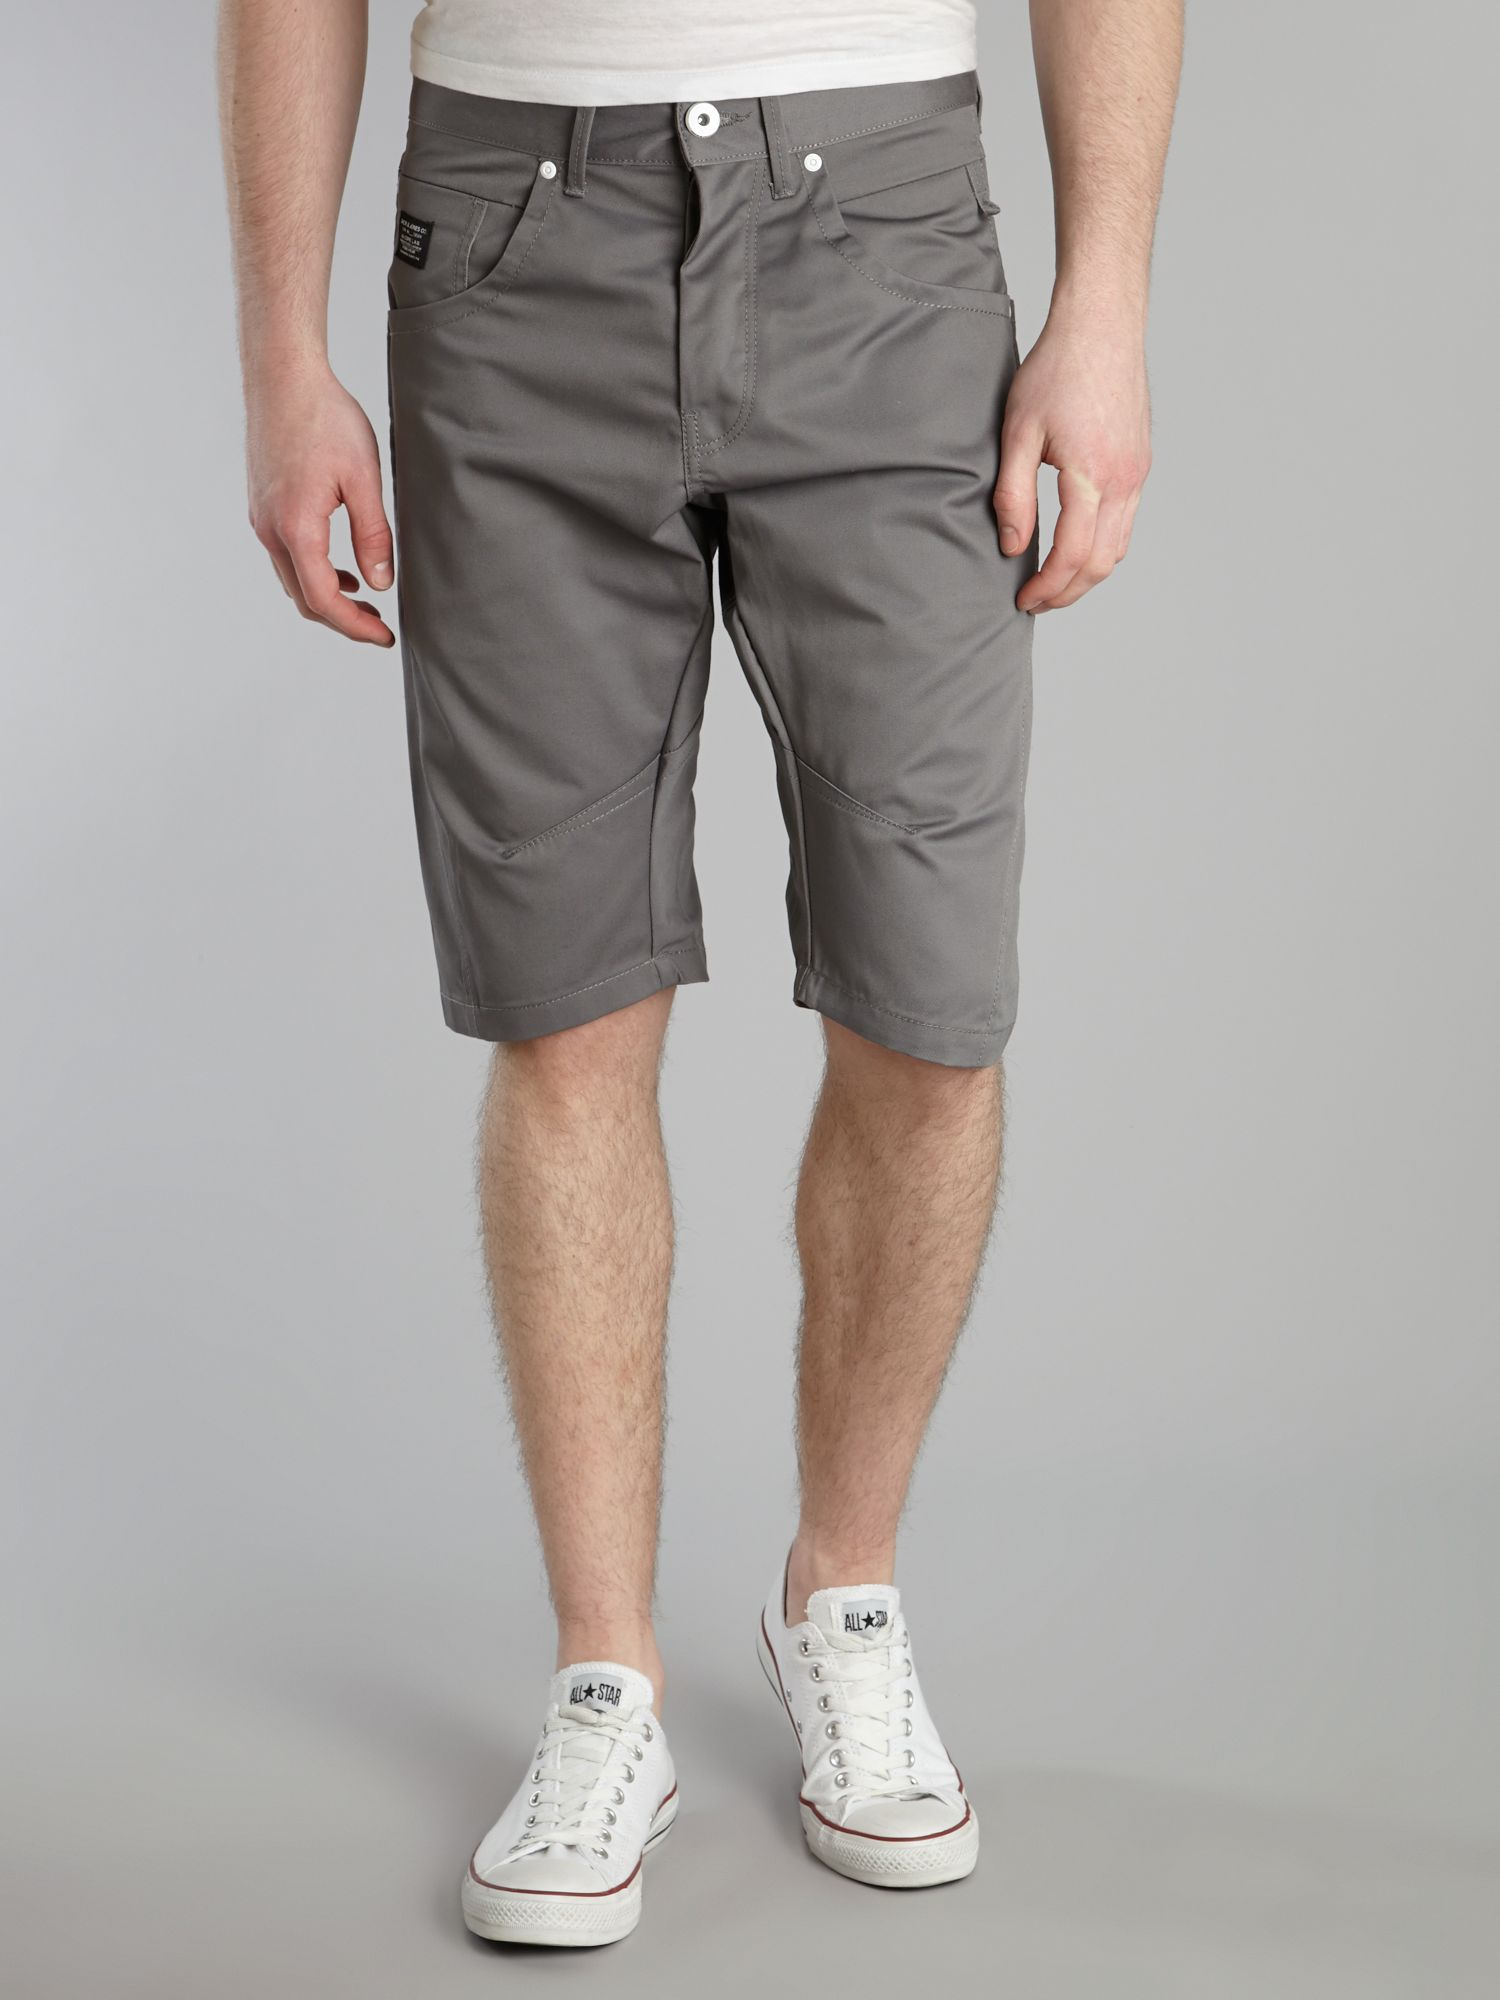 Dale Twisted long chino shorts